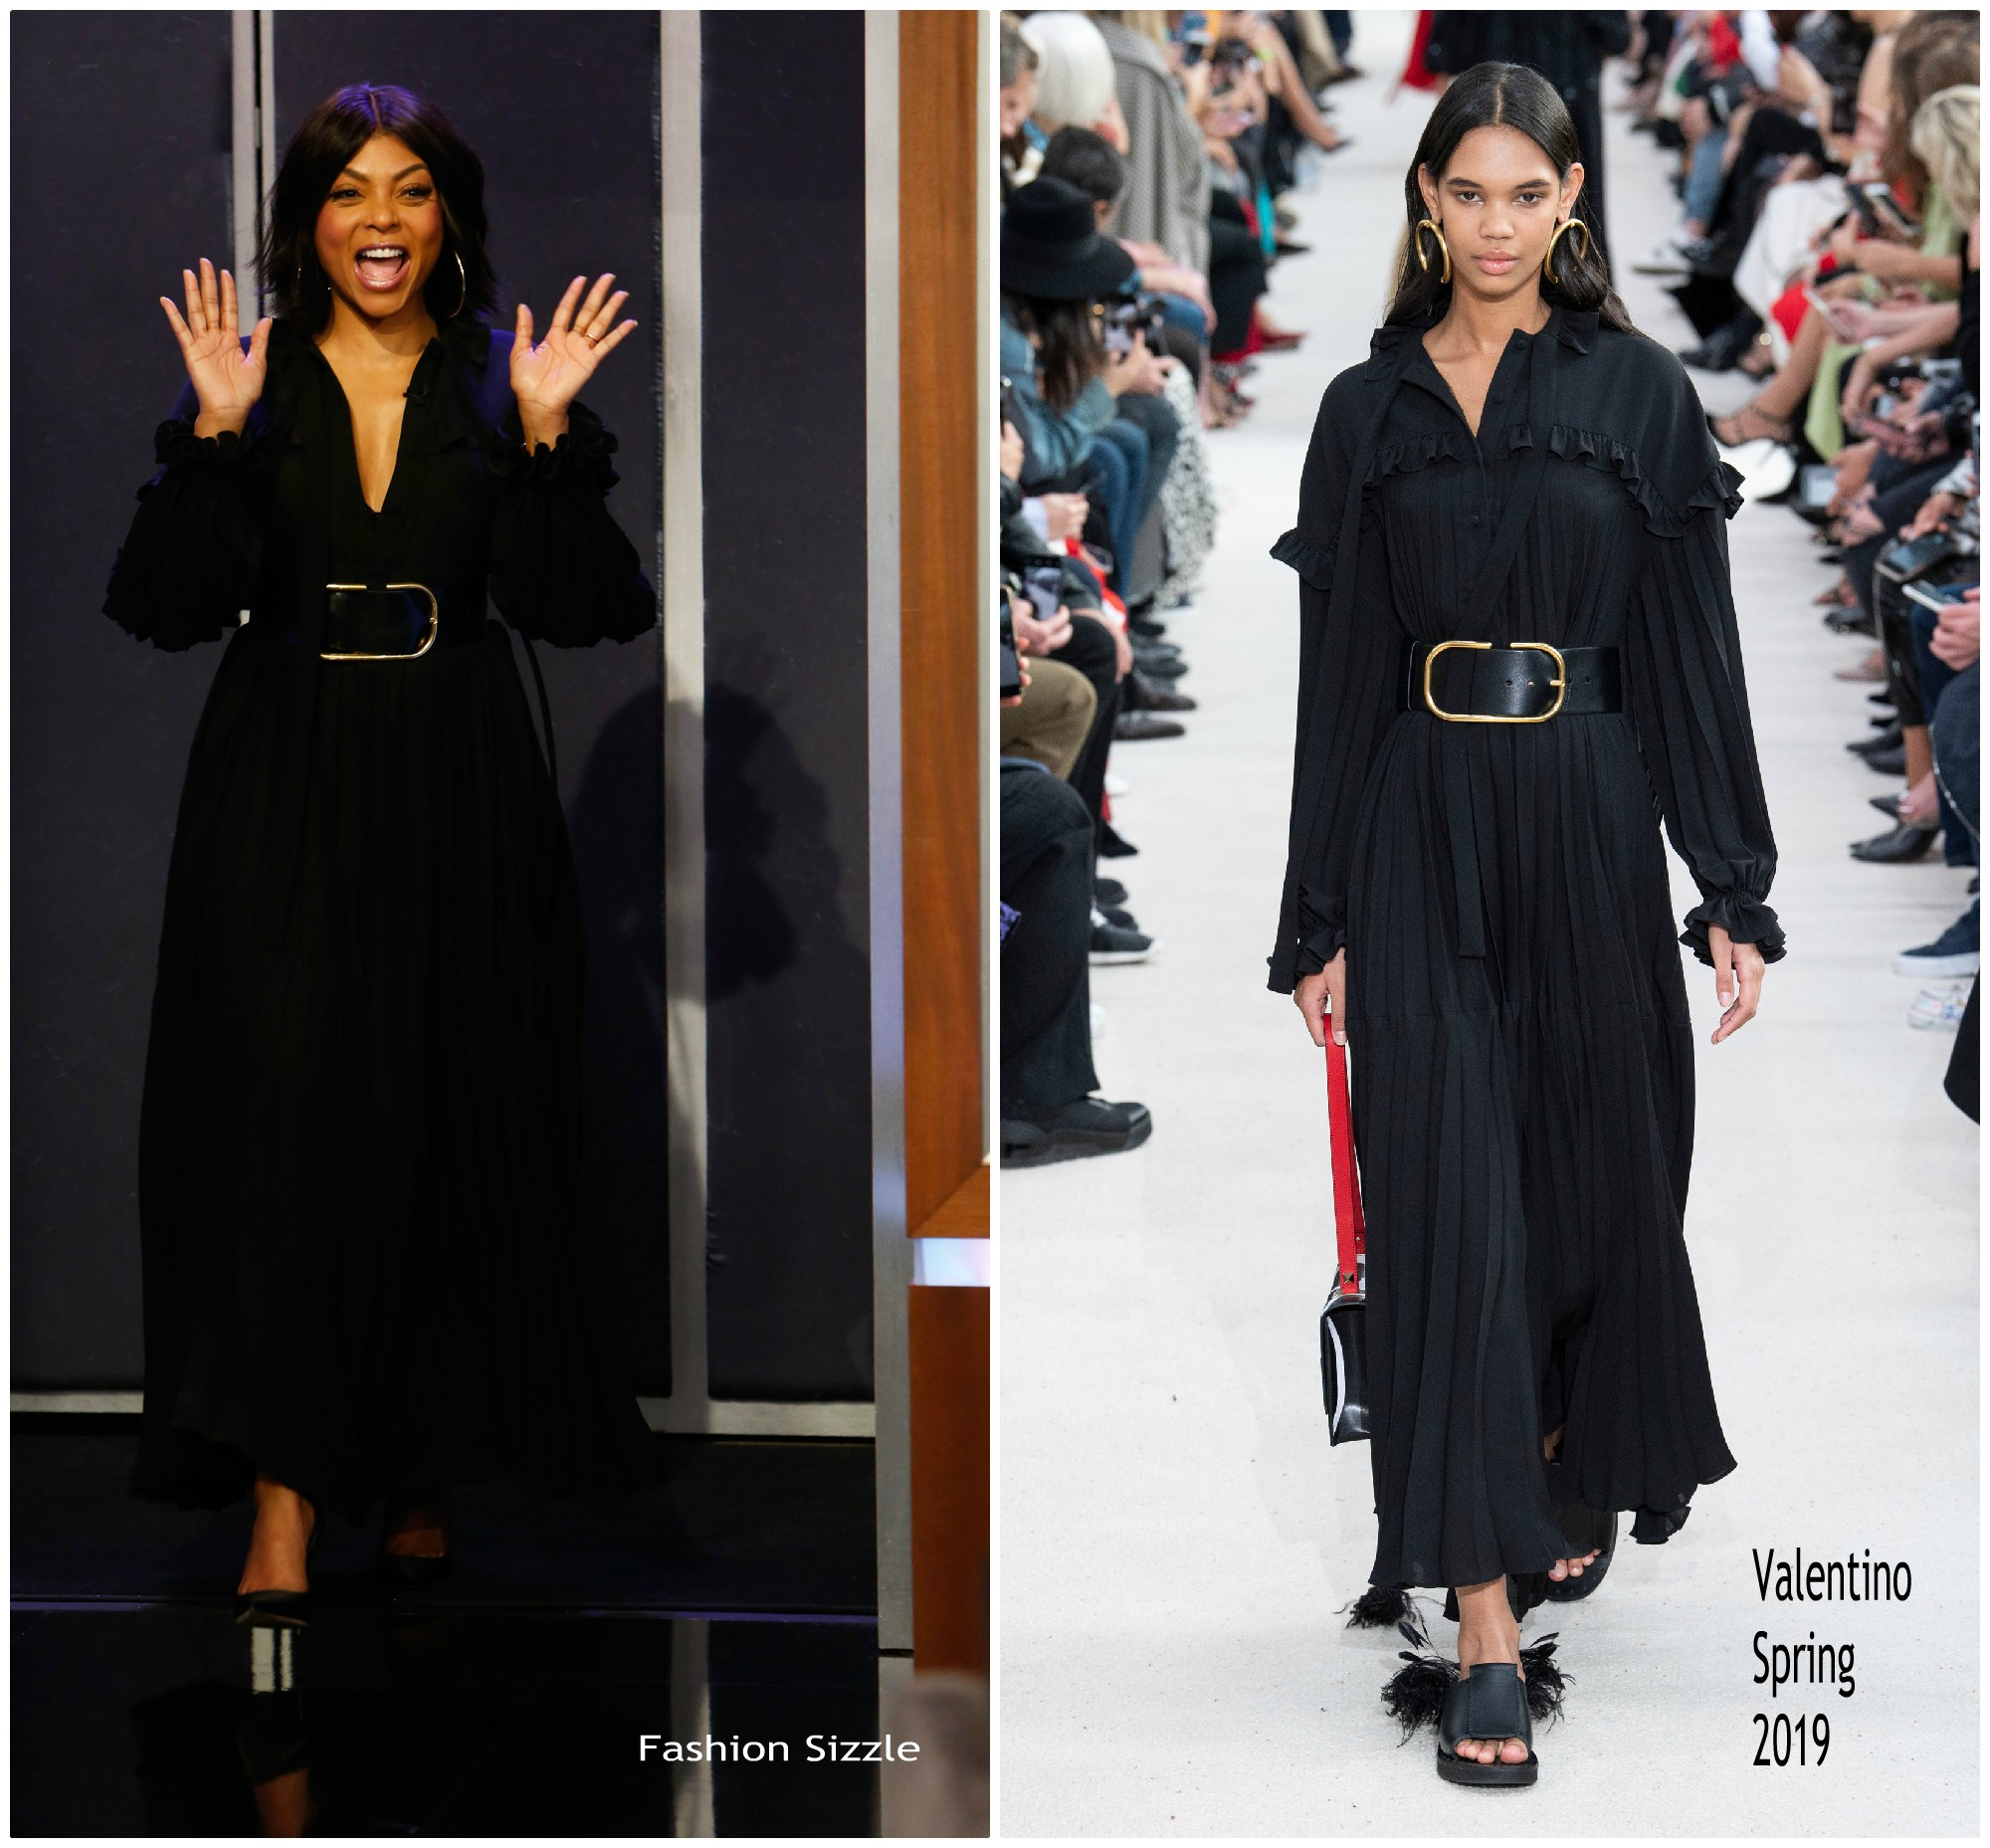 taraji-p-henson-in-valentino-ralph-breaks-the-internet-jimmy-kimmel-live